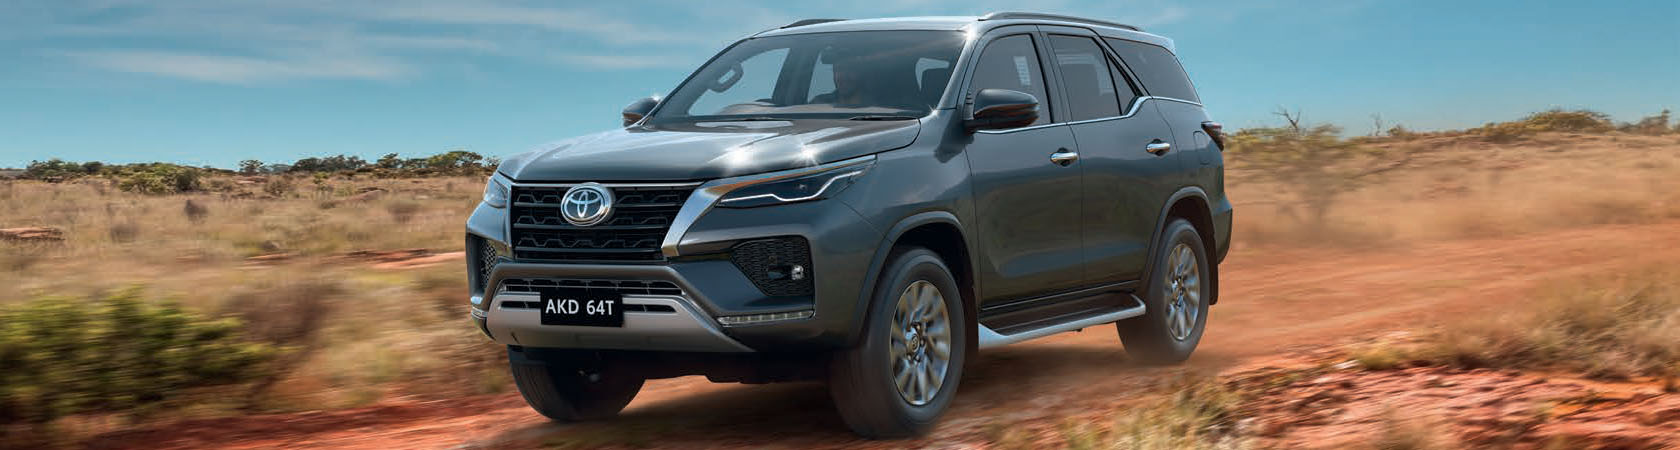 Grand Toyota Clarkson Fortuner